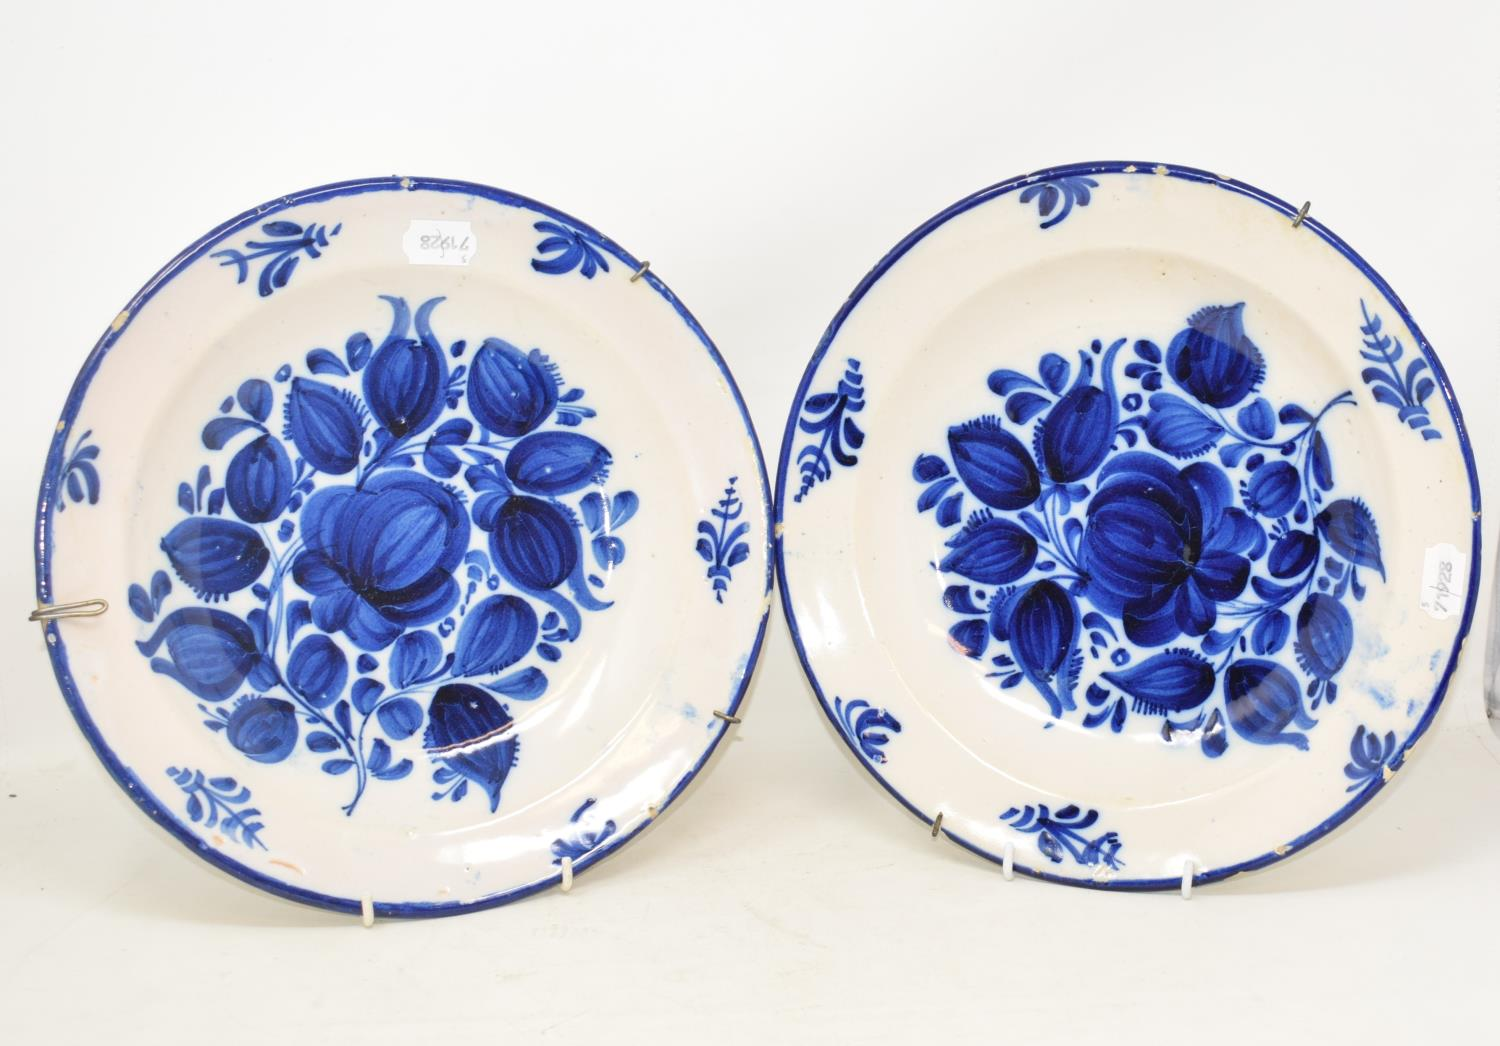 Lot 5 - A pair of tin glazed blue and white bowls, decorated flowers, 31.5 cm diameter, two pottery meat